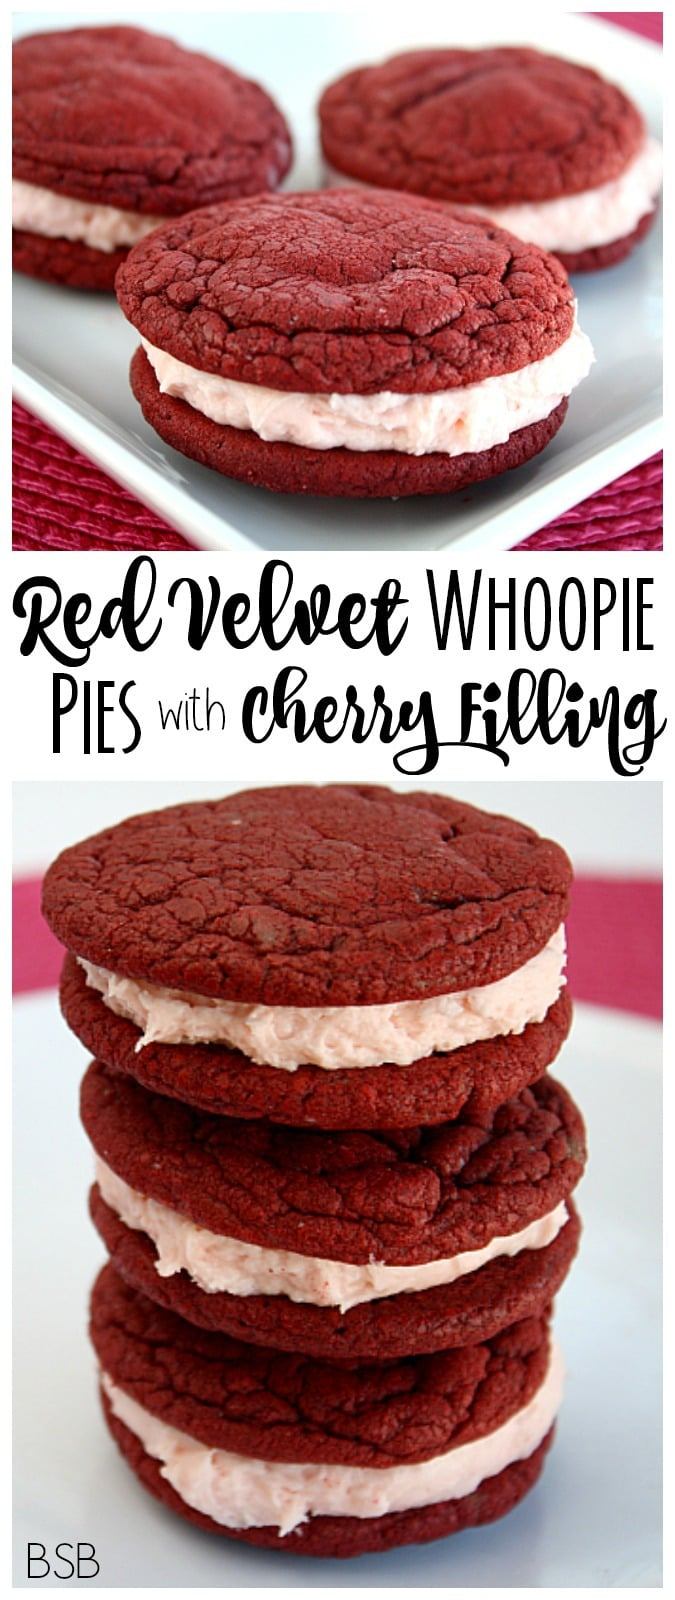 These red velvet whoopie pies with marshmallow filling are an easy and delicious treat. With the cherry marshmallow filling, they add a touch of flavor and romance, making them perfect for Valentine's Day!